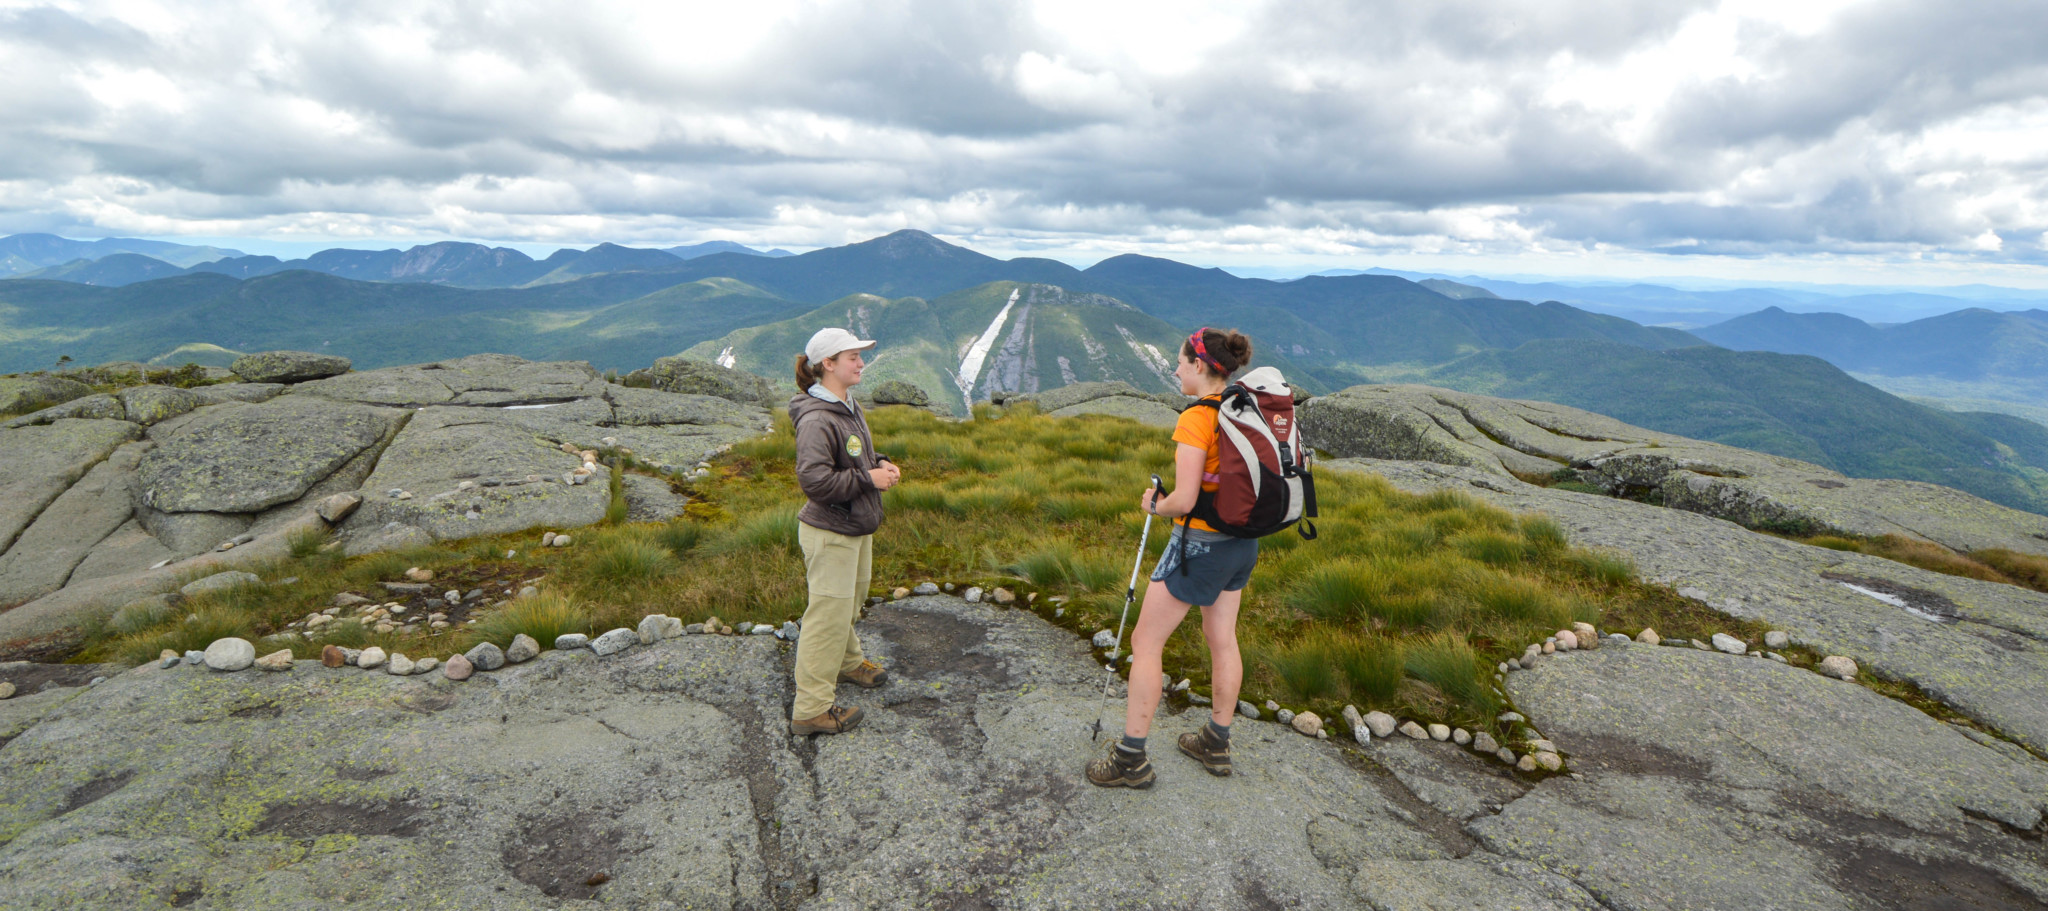 A summit steward speaks to a hiker on the summit of Algonquin